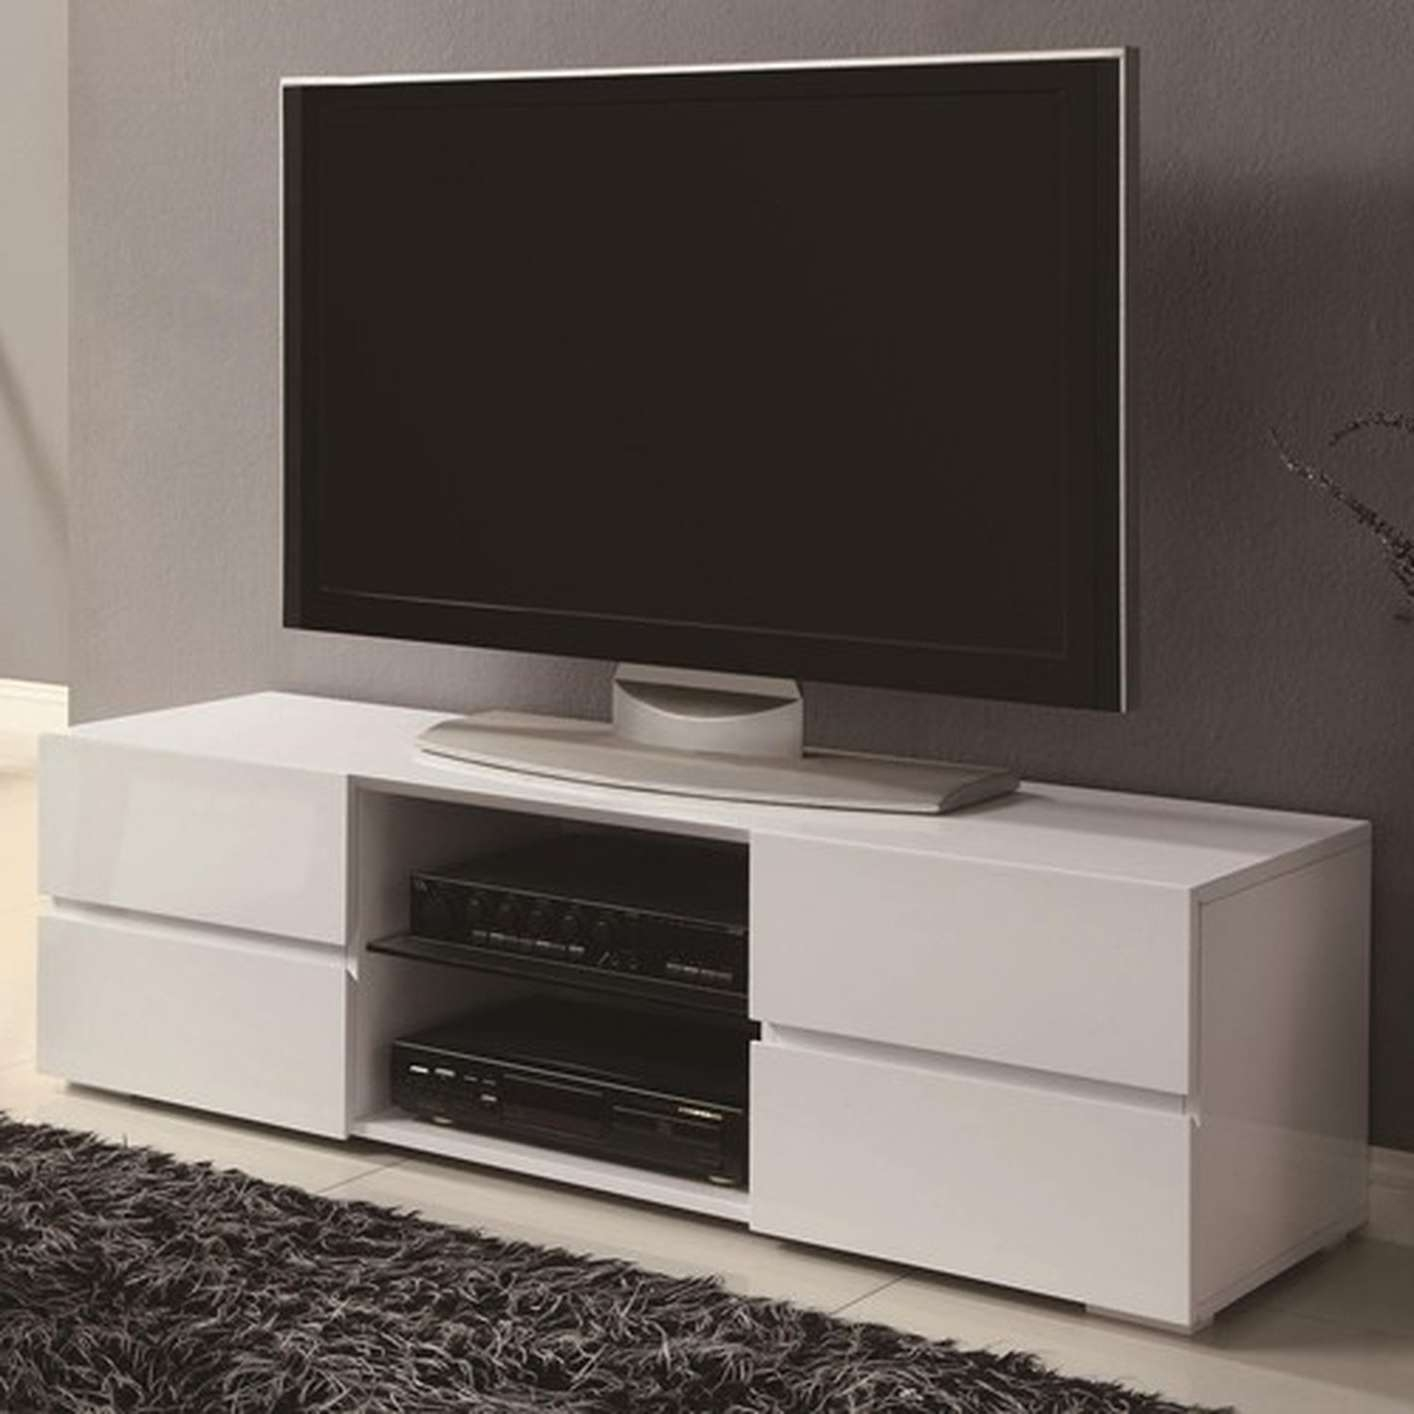 White Wood Tv Stand – Steal A Sofa Furniture Outlet Los Angeles Ca Throughout White Wood Tv Cabinets (View 2 of 20)